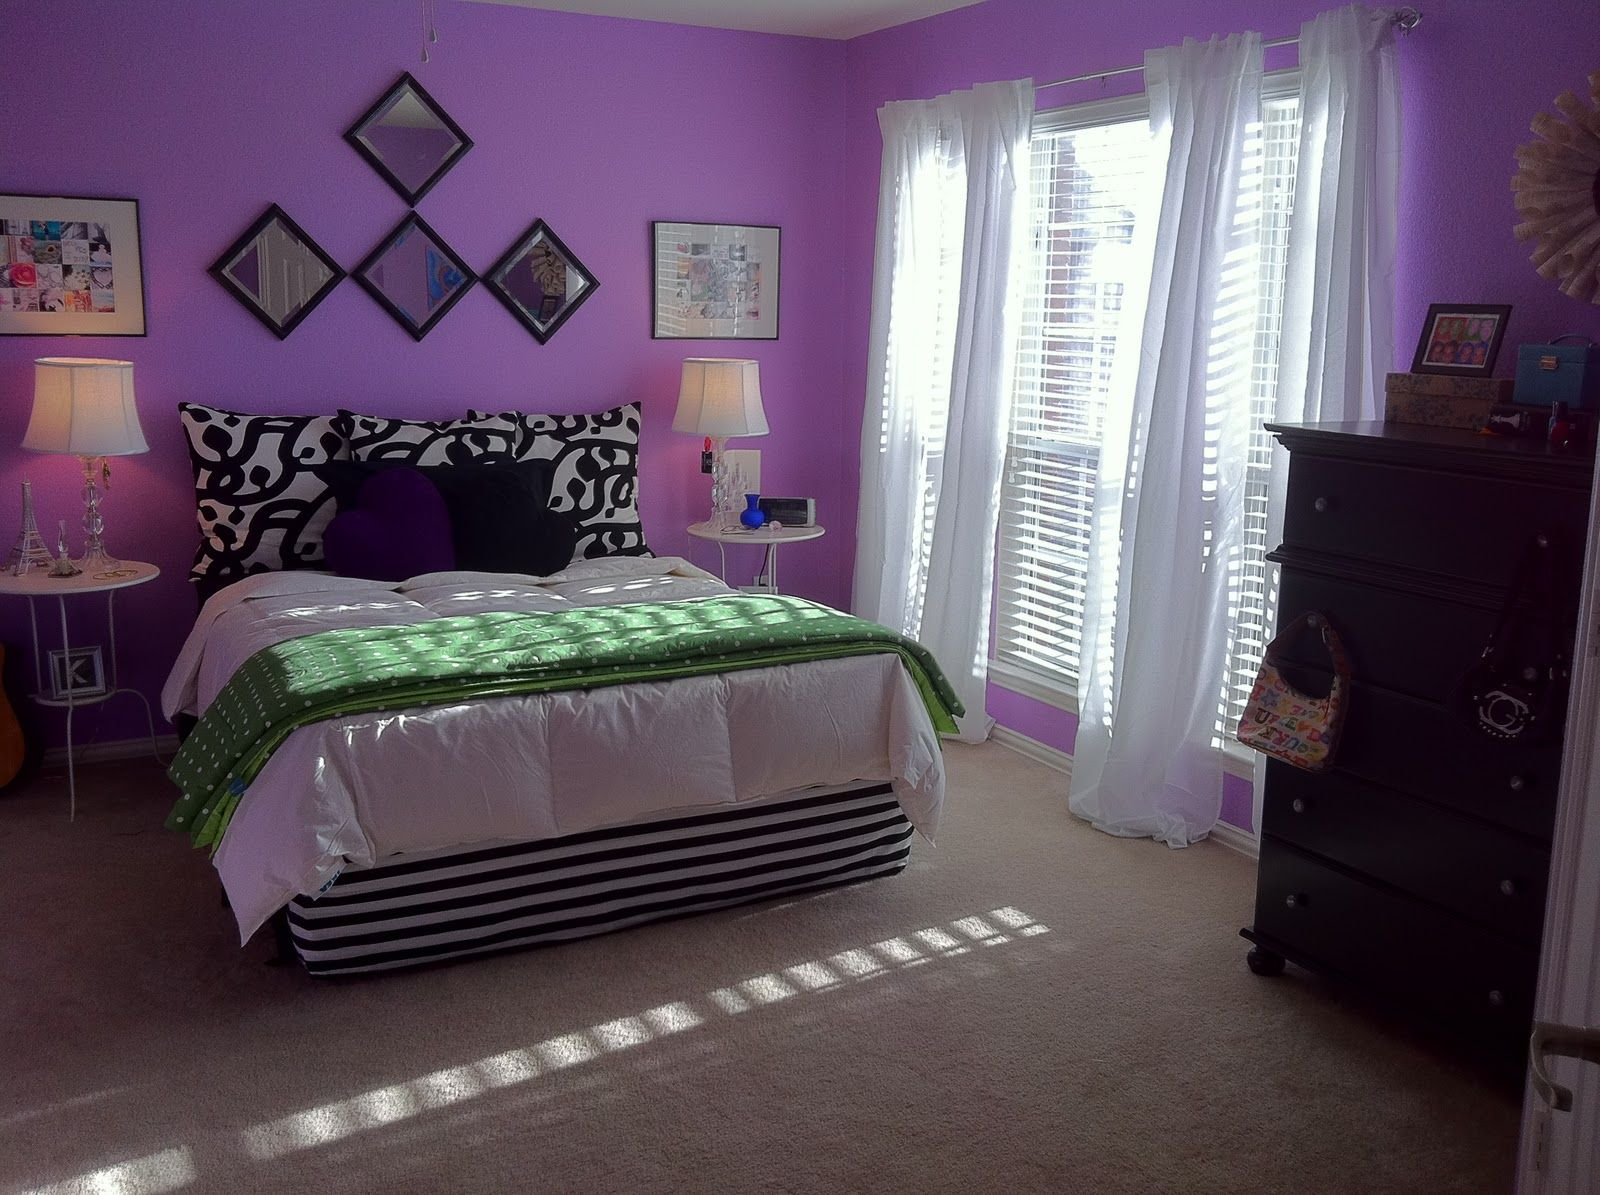 Bedroom Decorating Ideas In Purple purple teen bedrooms | room ideas :) | pinterest | purple teen